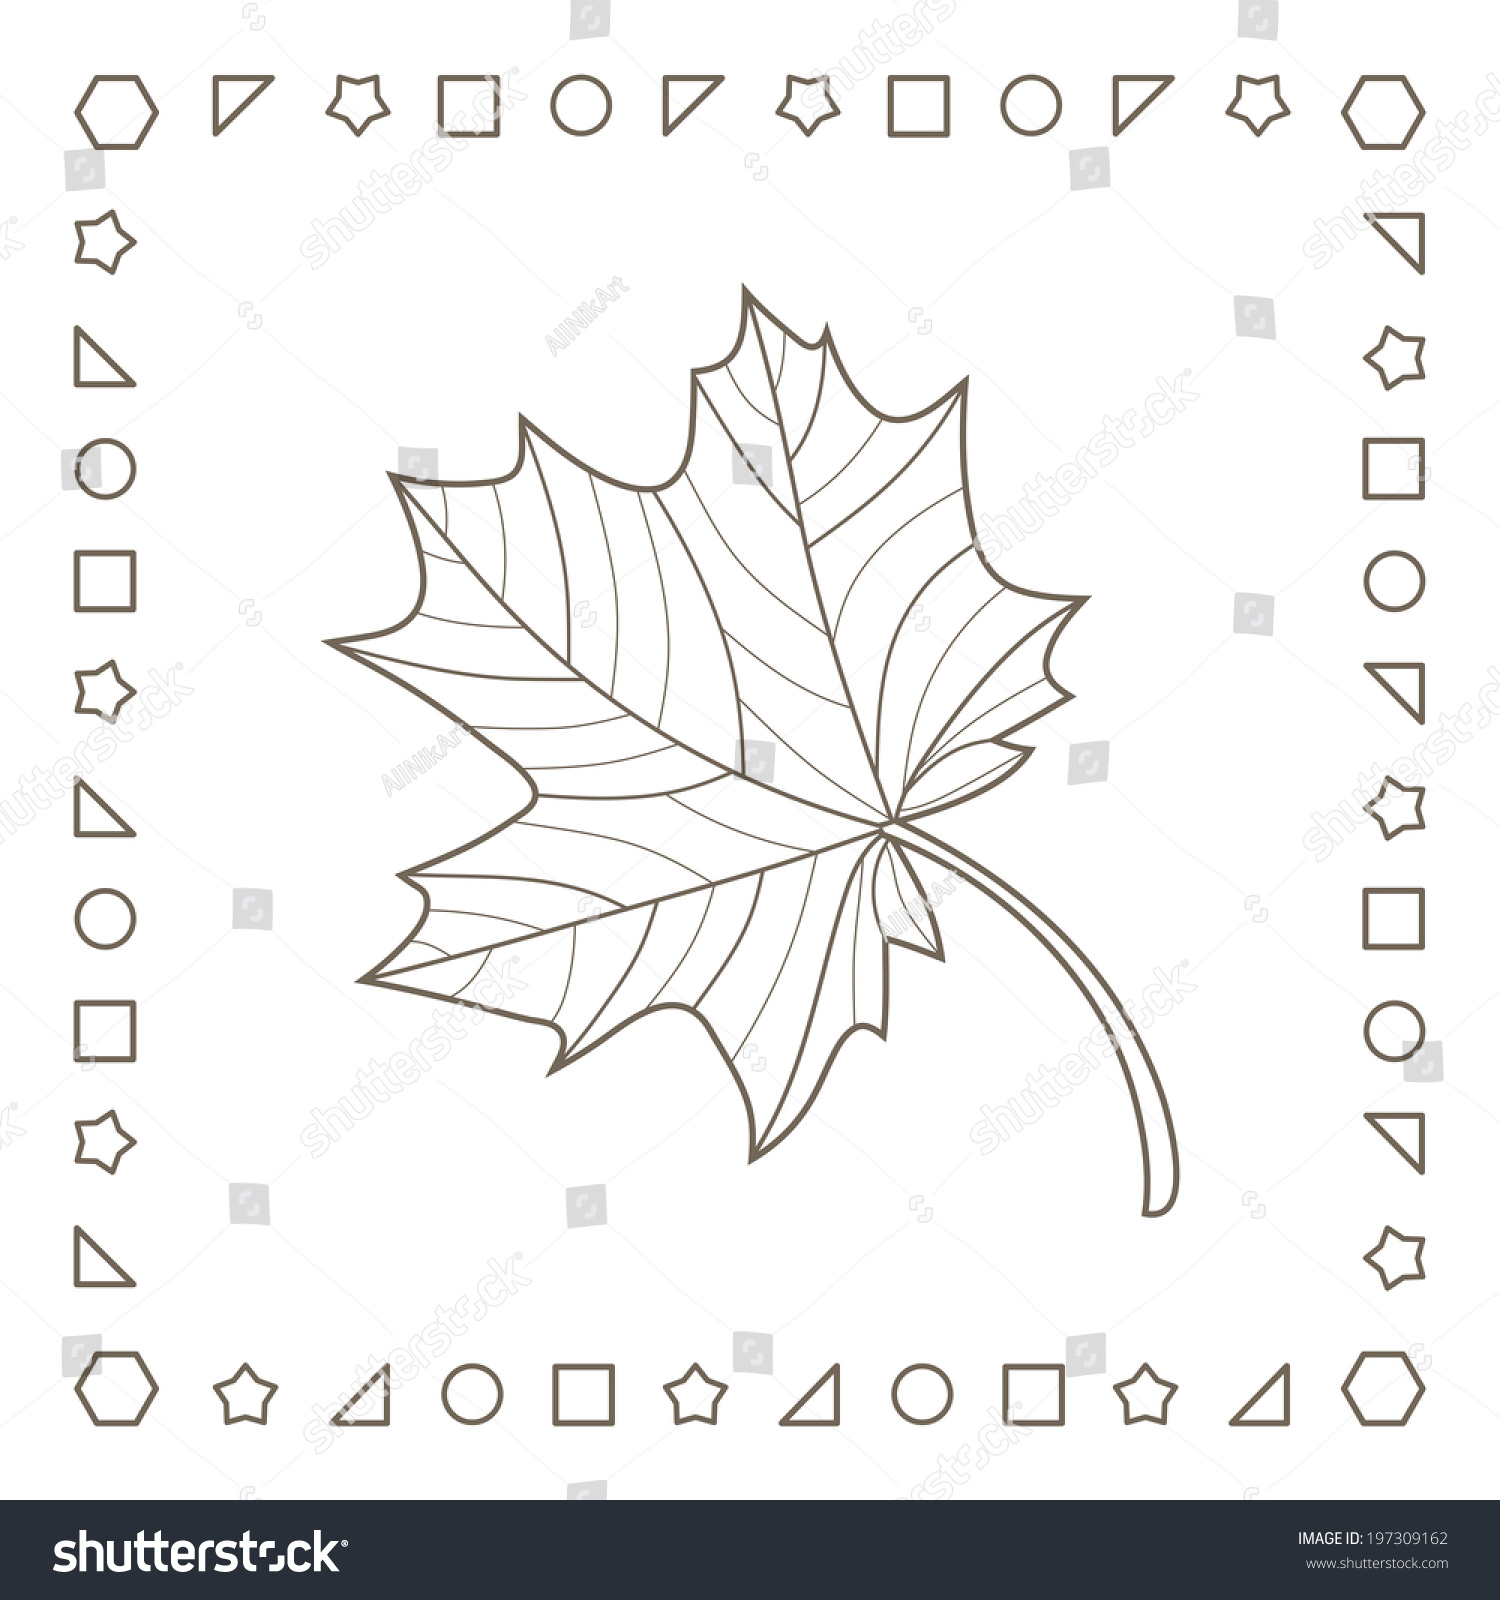 Maple Leaf Coloring Page Coloring Book Stock Illustration 197309162 ...